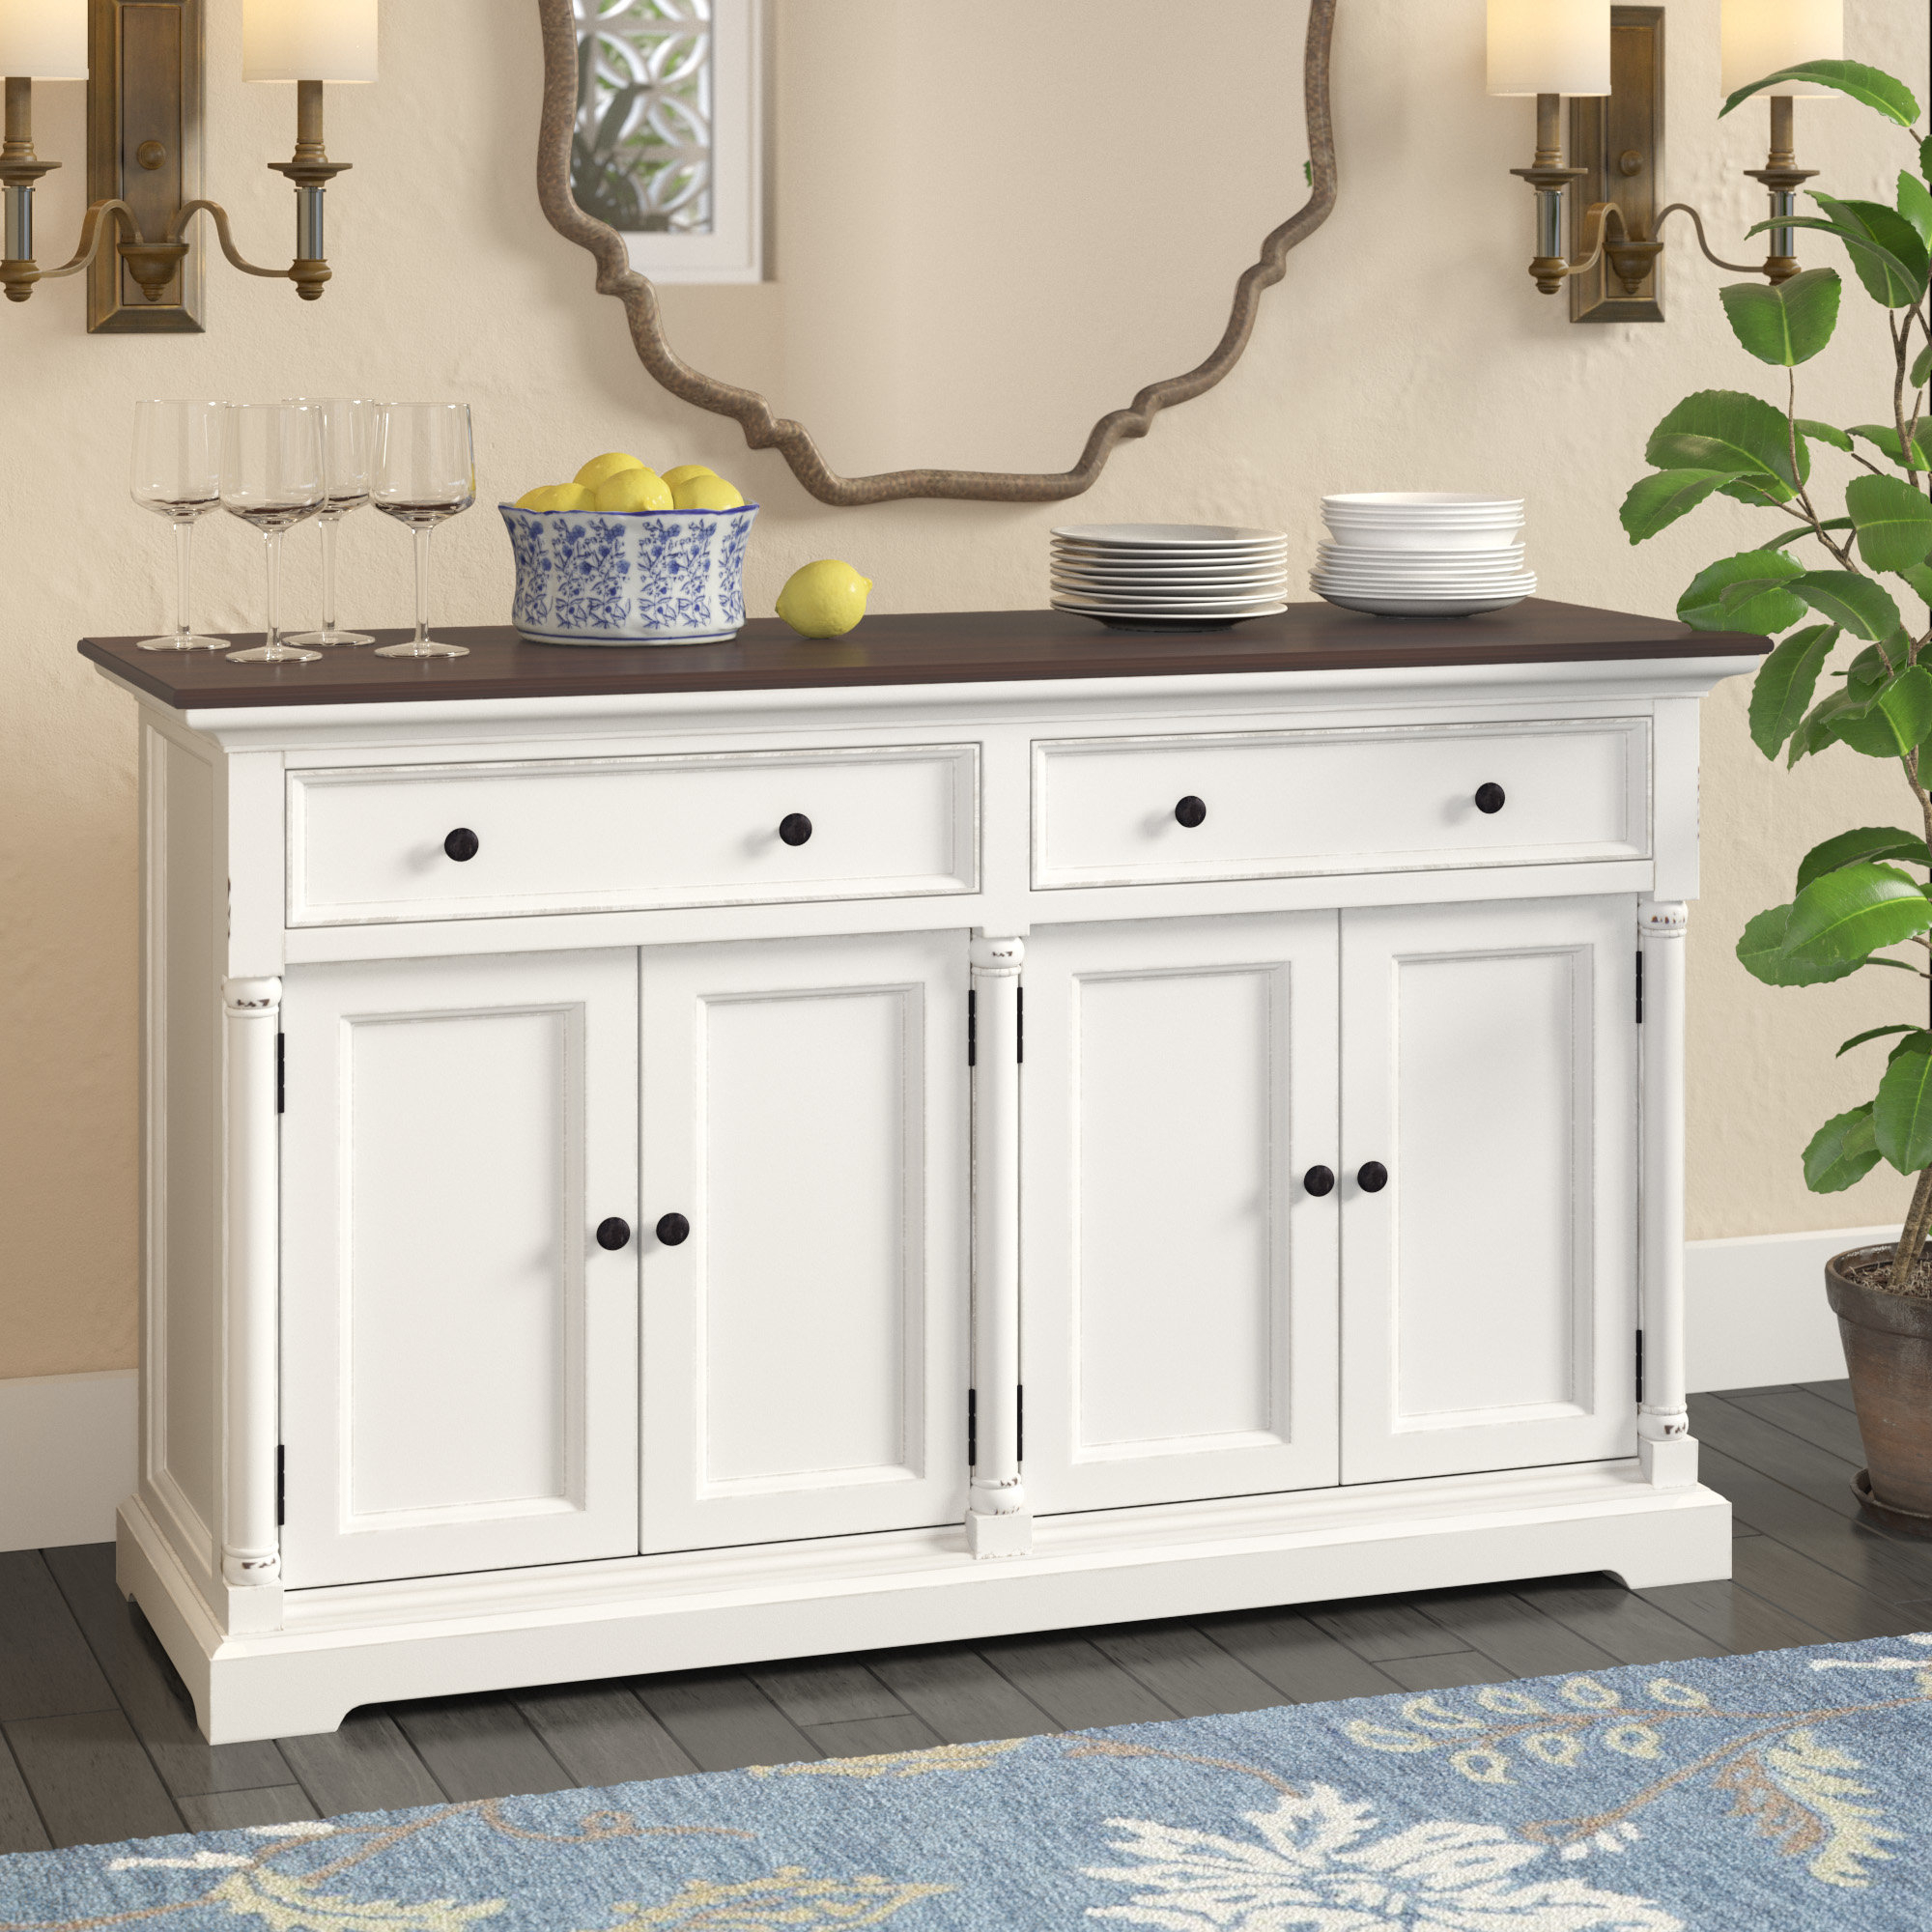 Tilman Sideboards Regarding Fashionable Farmhouse & Rustic Darby Home Co Sideboards & Buffets (View 17 of 20)